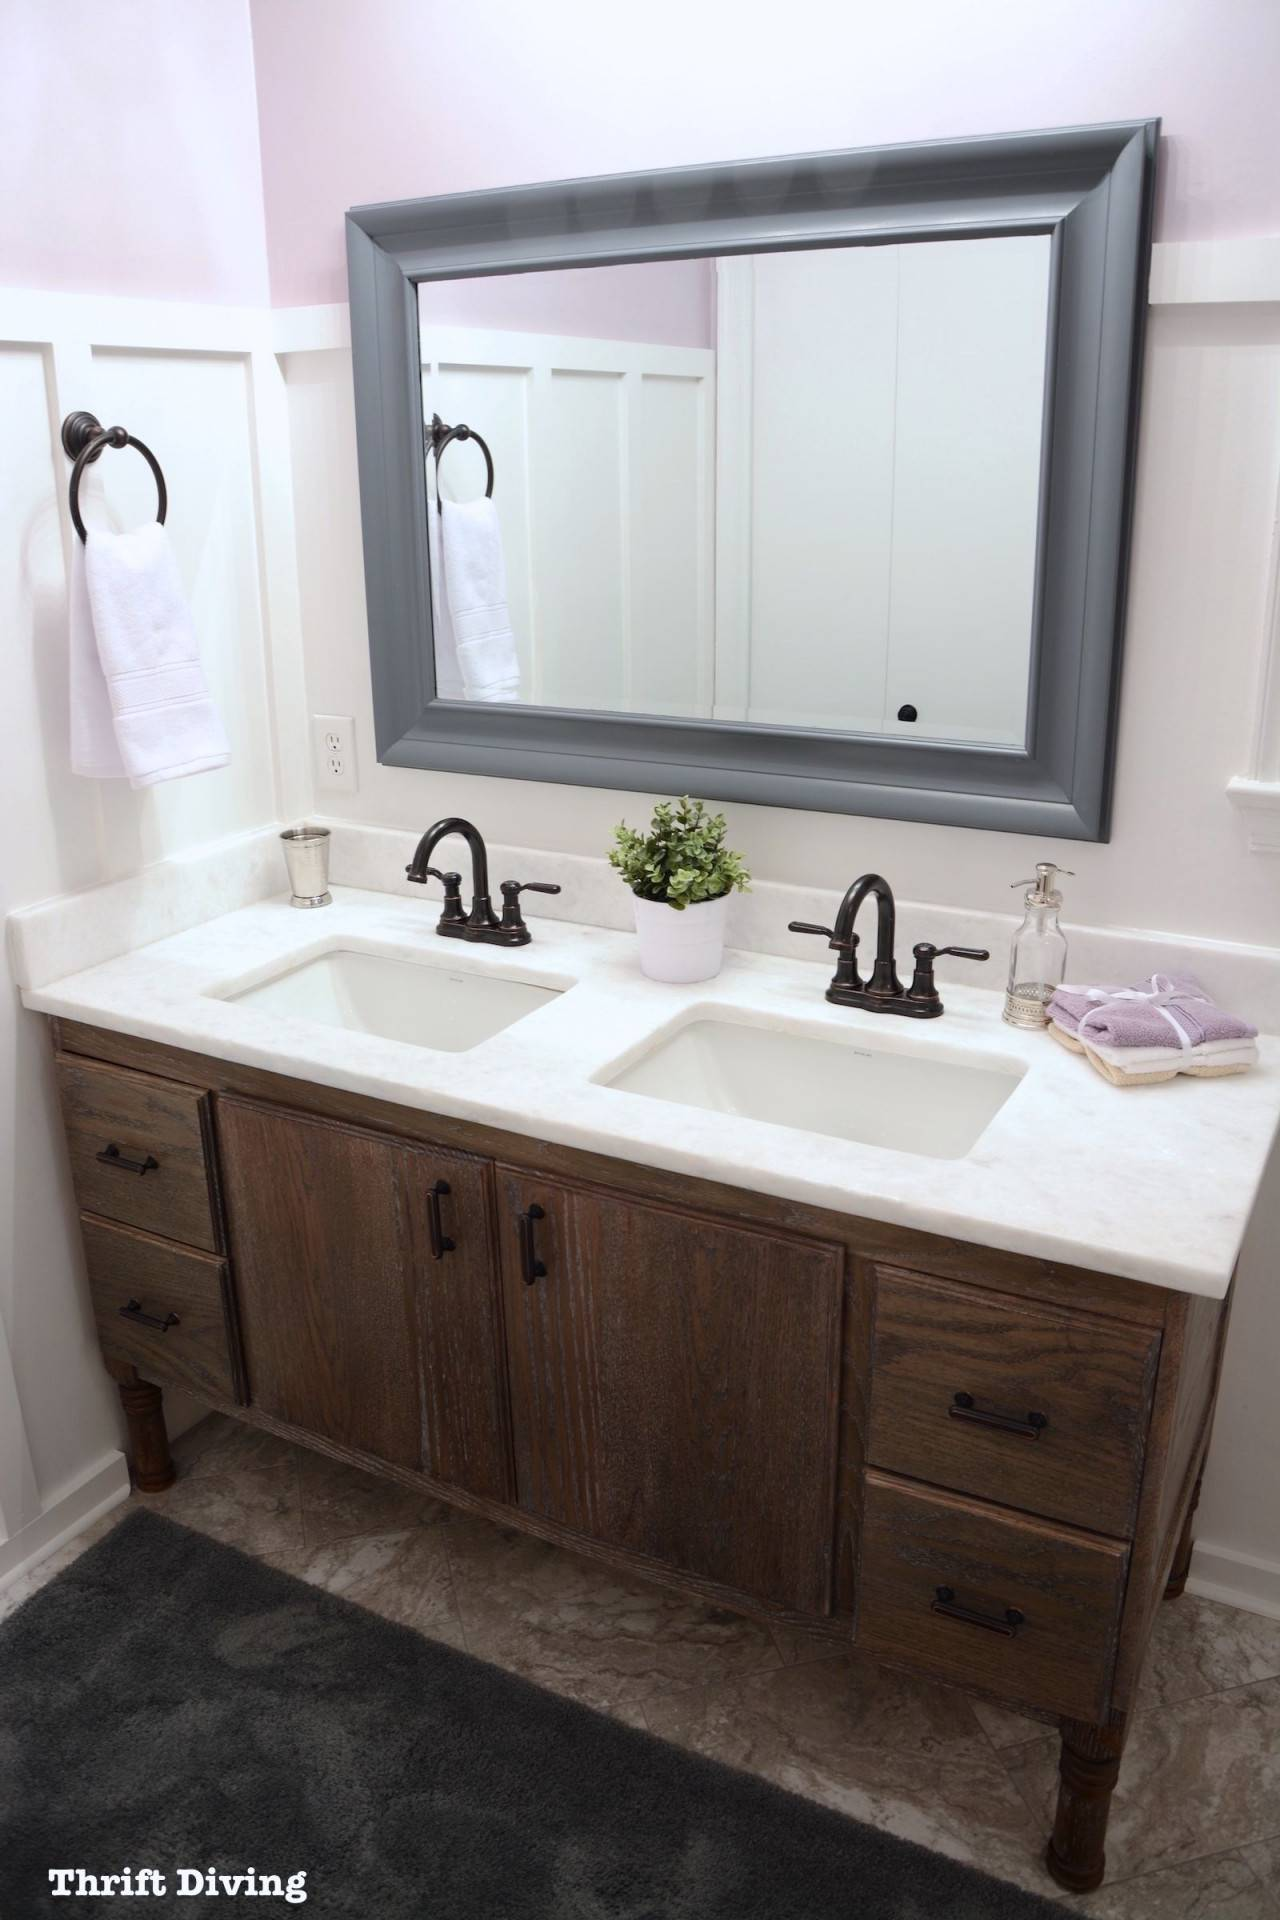 bathroom cabinets diy elegant before and after how to build a diy bathroom vanity from scratch of bathroom cabinets diy